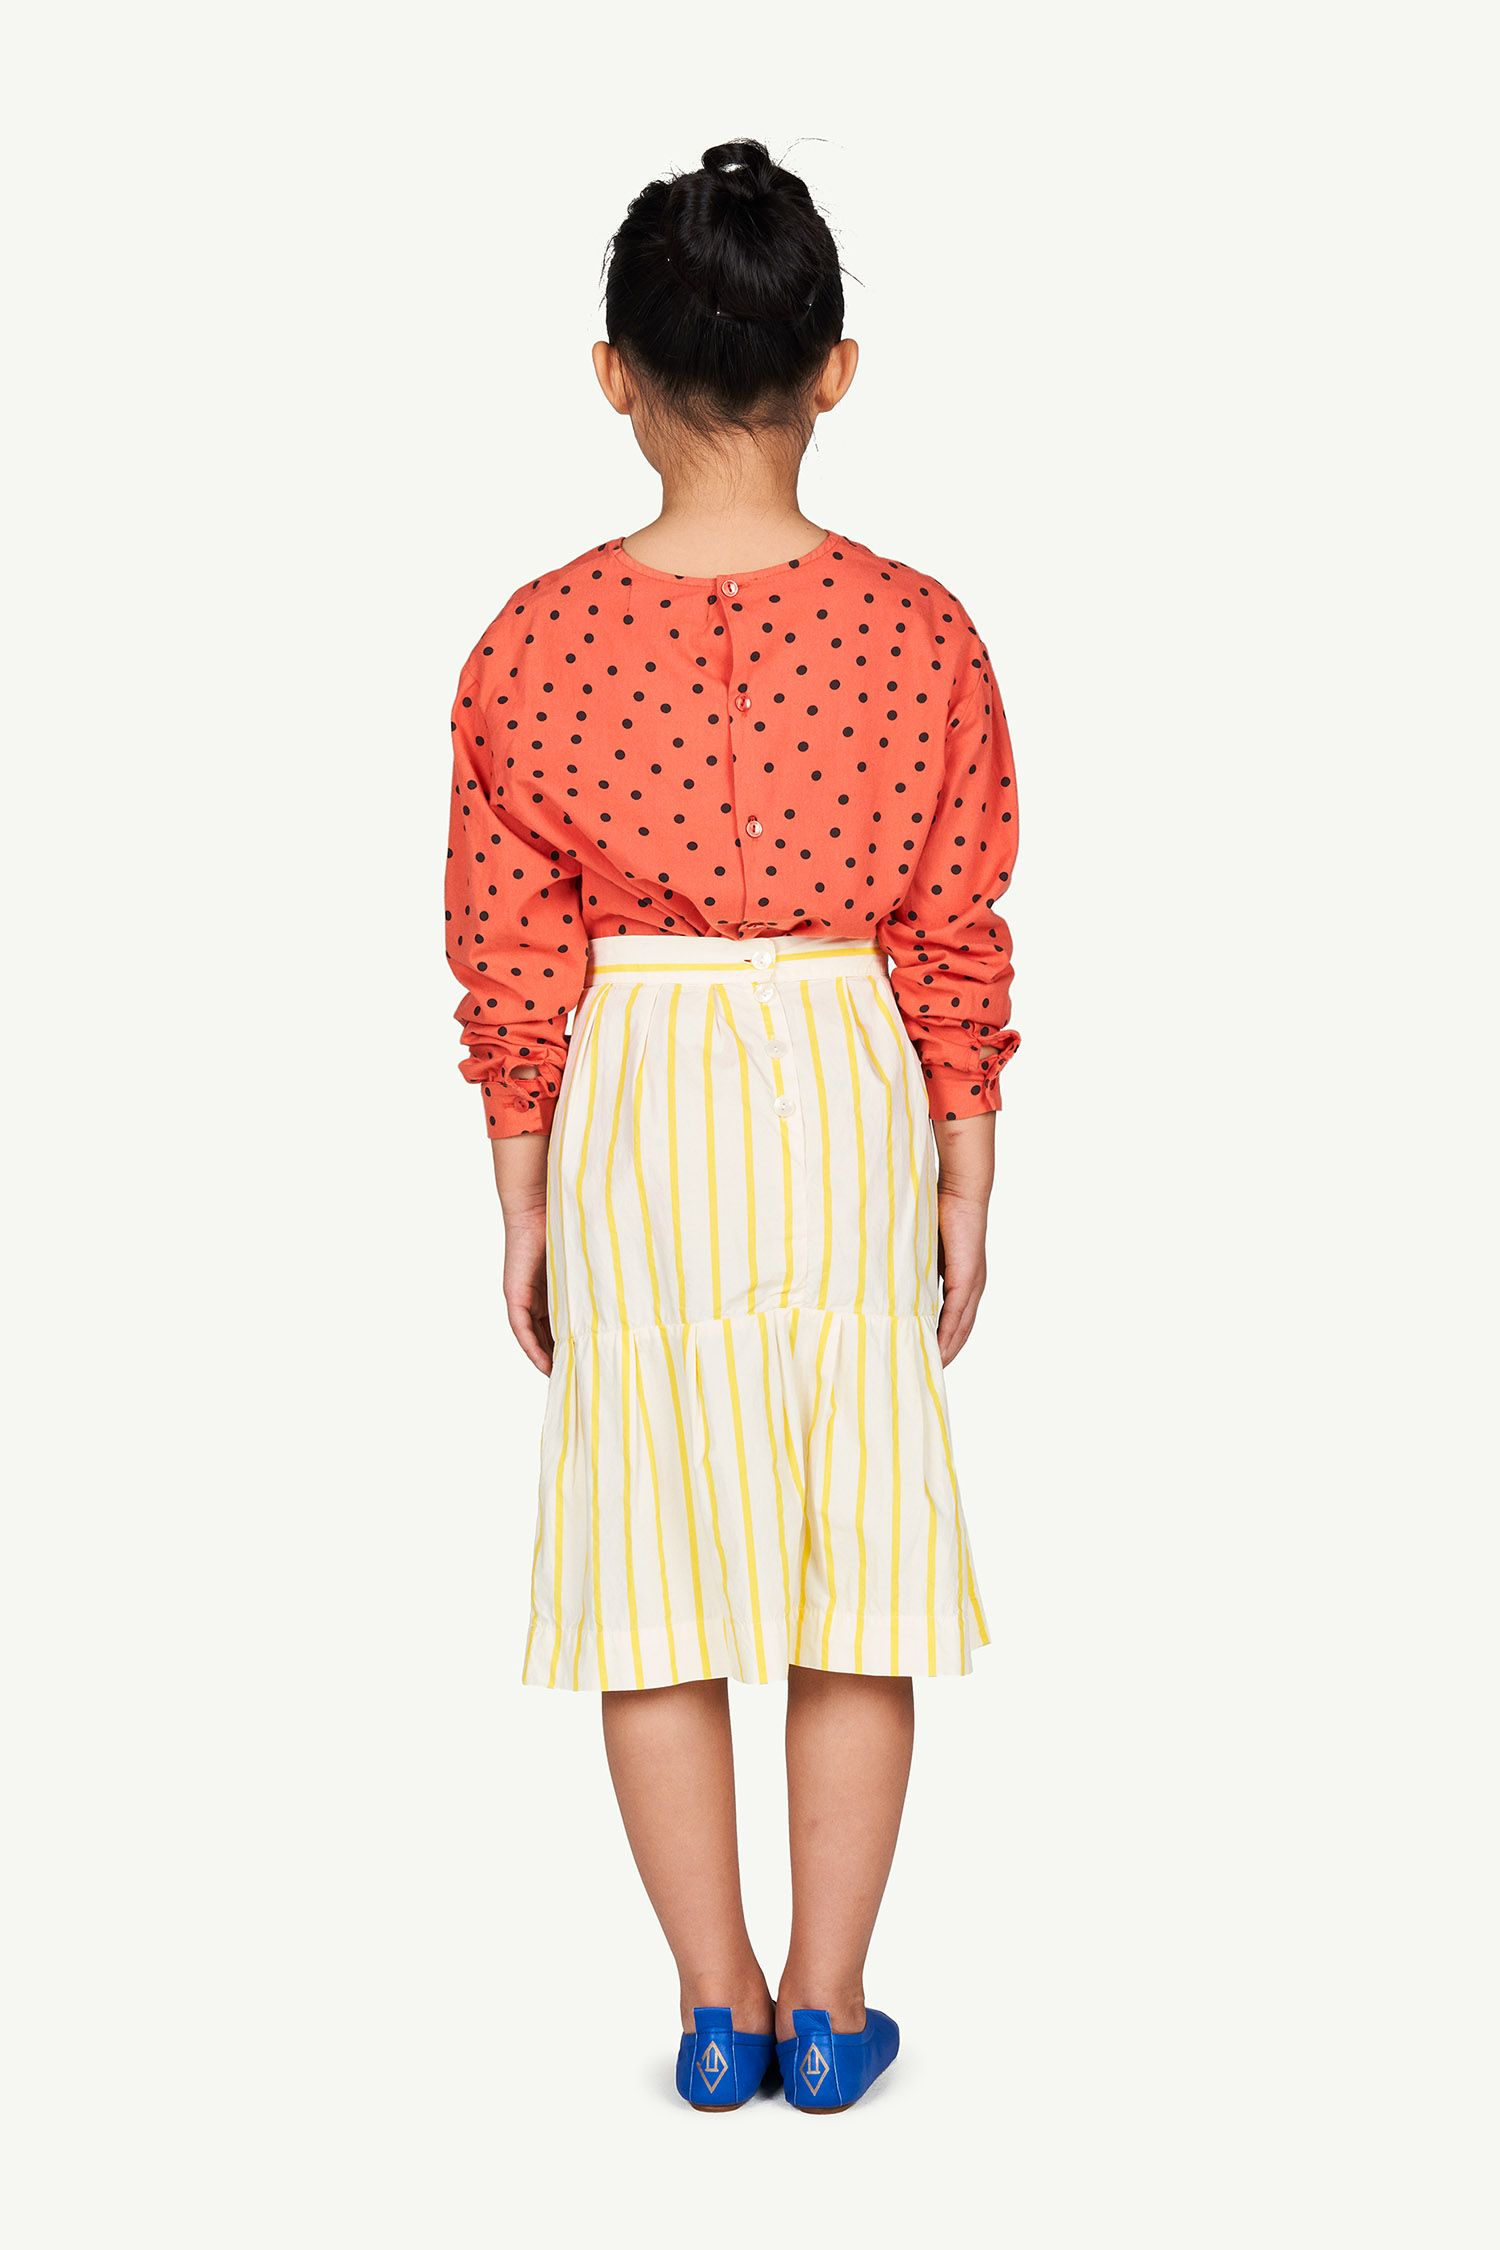 Red Dots Marmot Blouse img-6